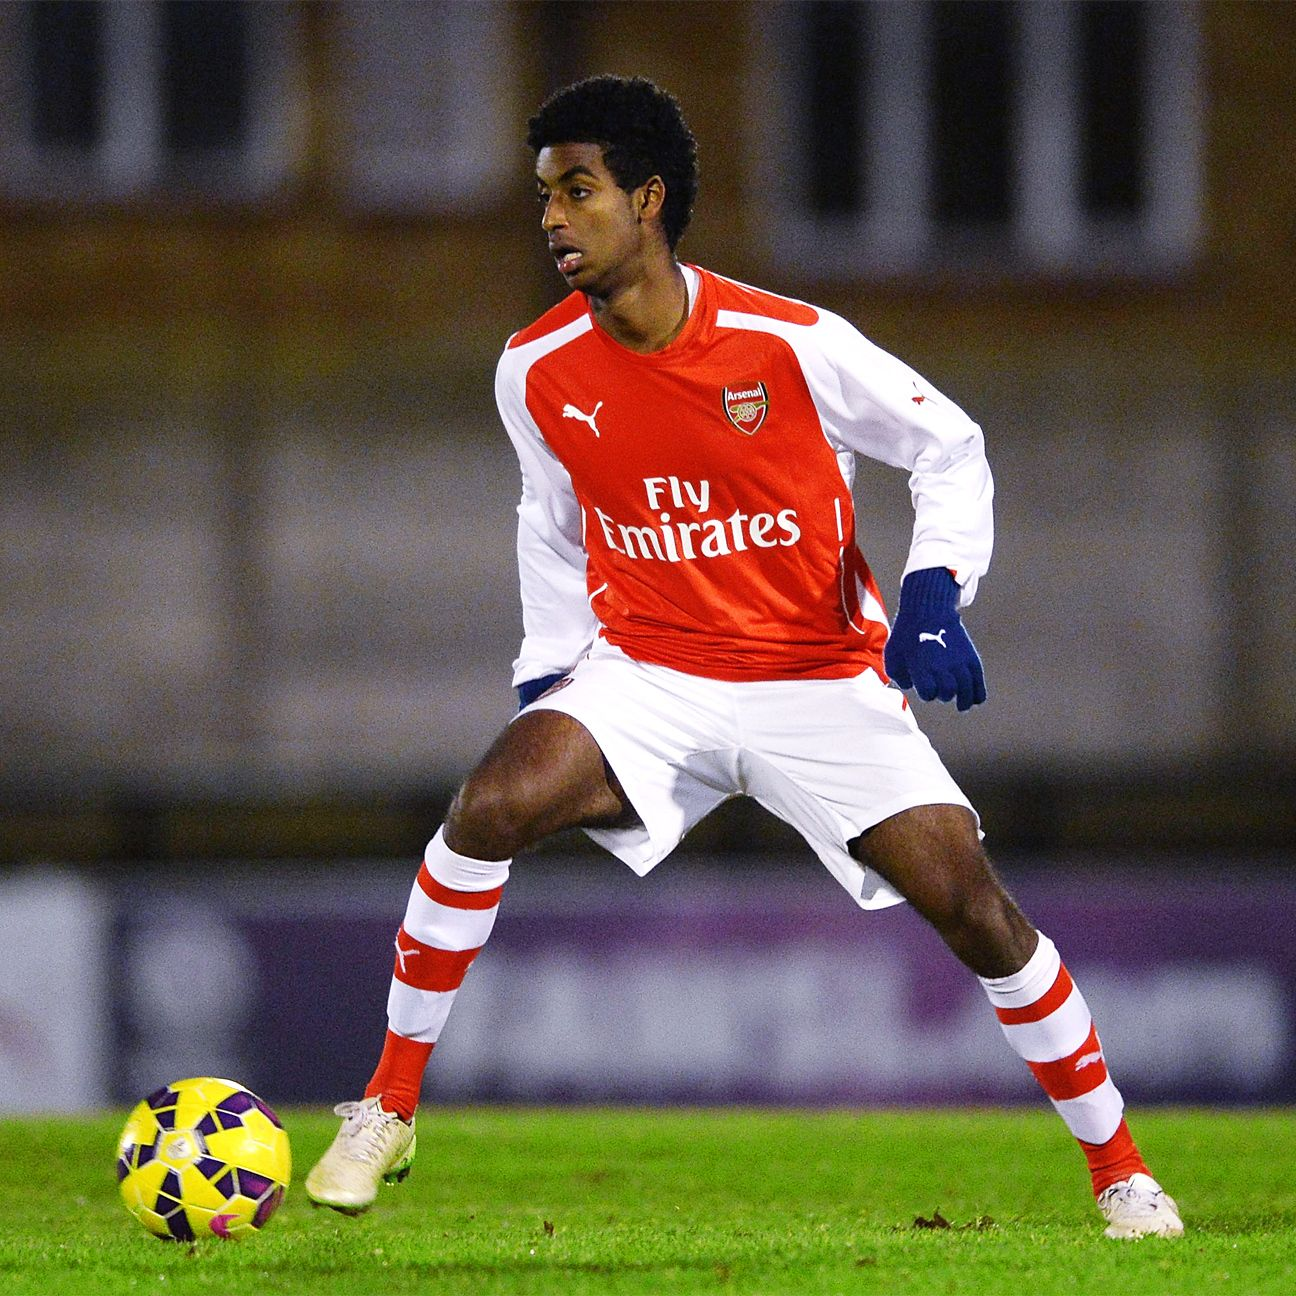 Gedion Zelalem is an exciting addition for the American soccer program.